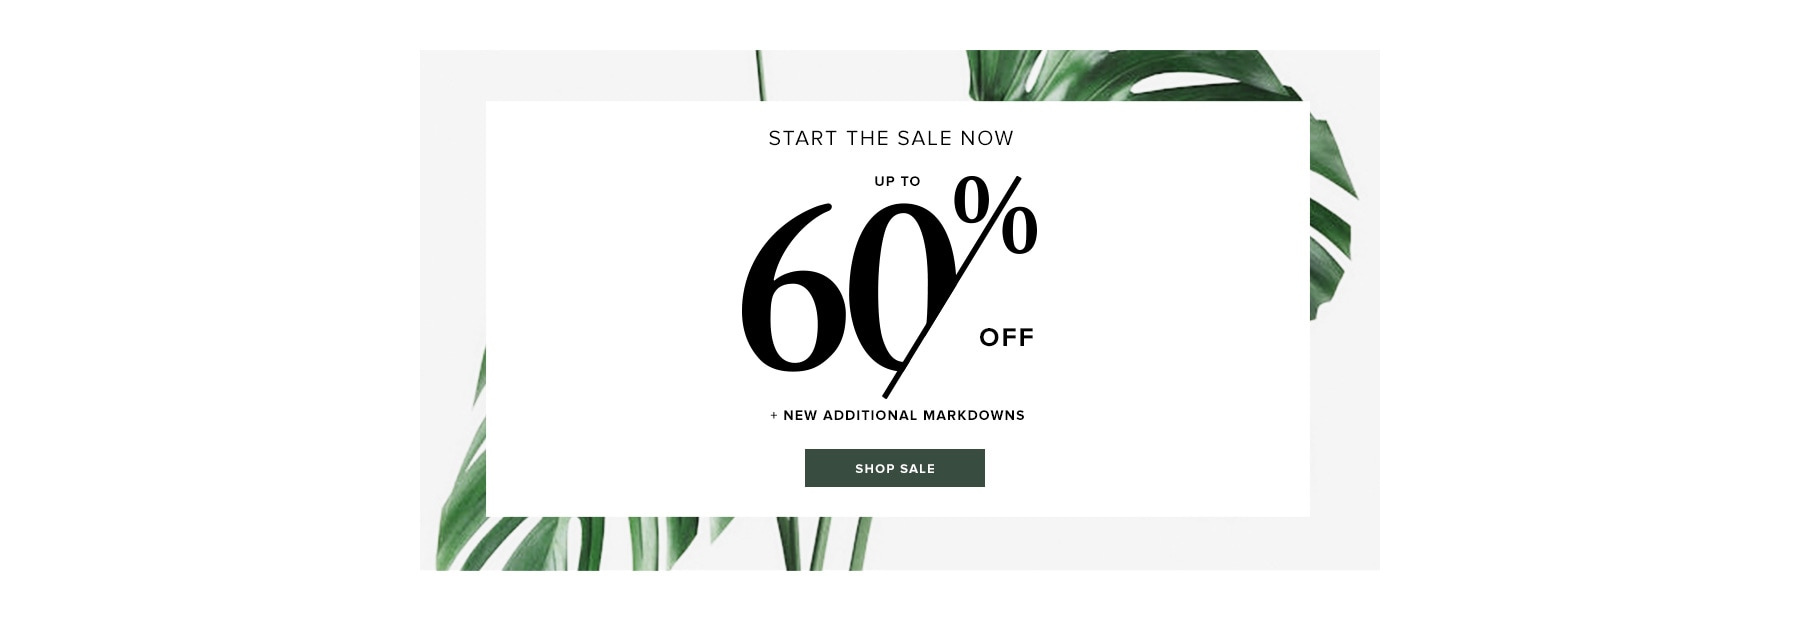 Start The Sale Now. Up To 60% Off + New Additional Markdowns. Shop Sale.